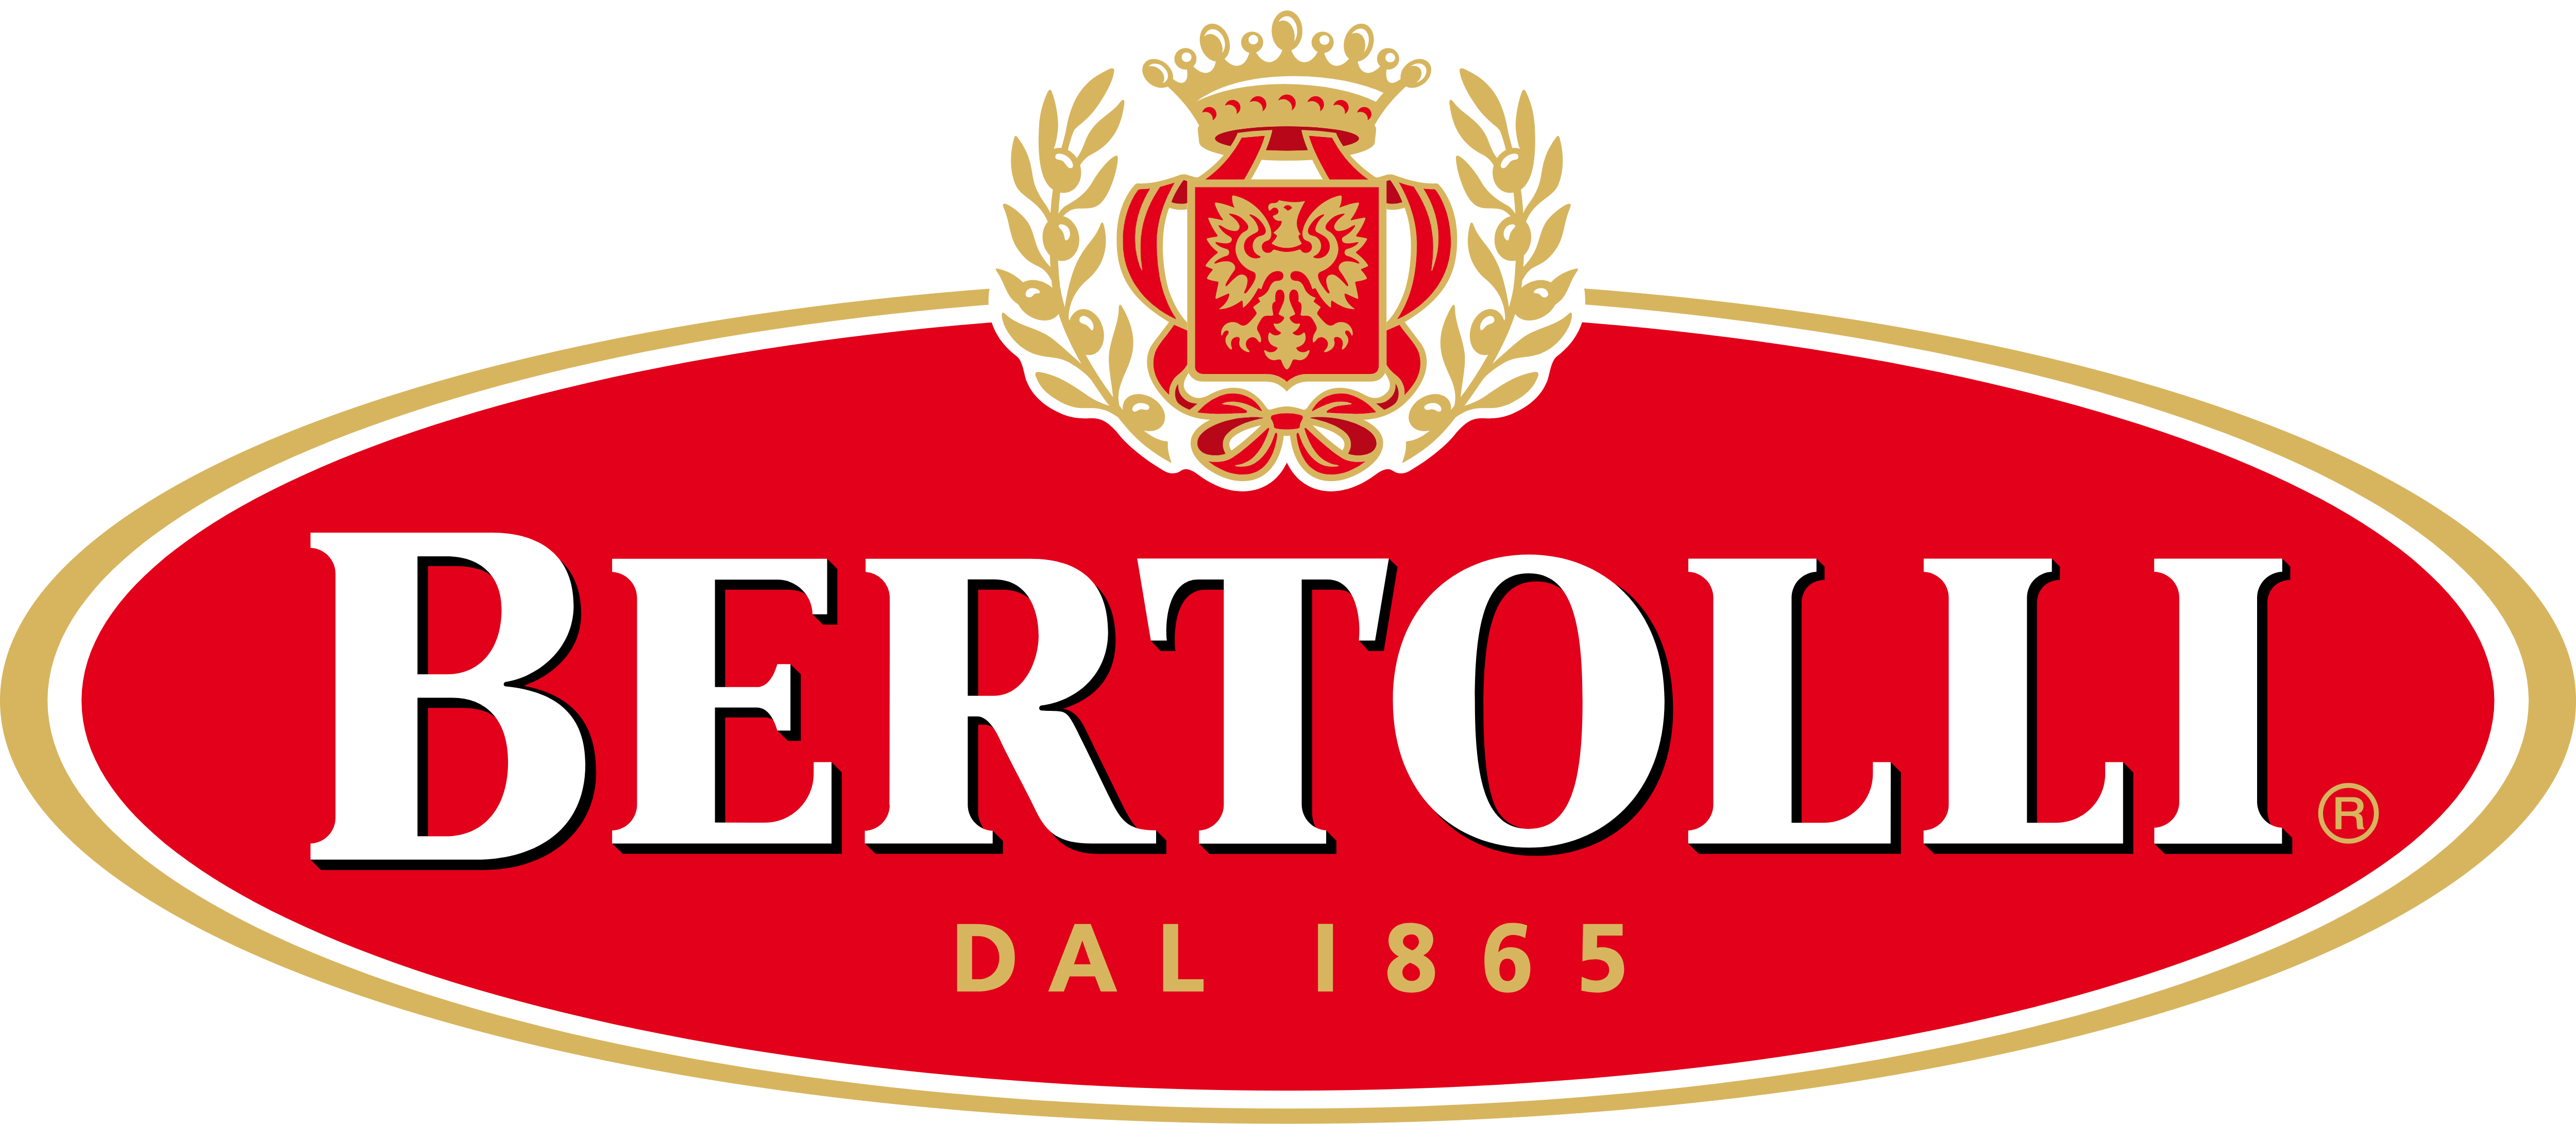 bertolli � logos download